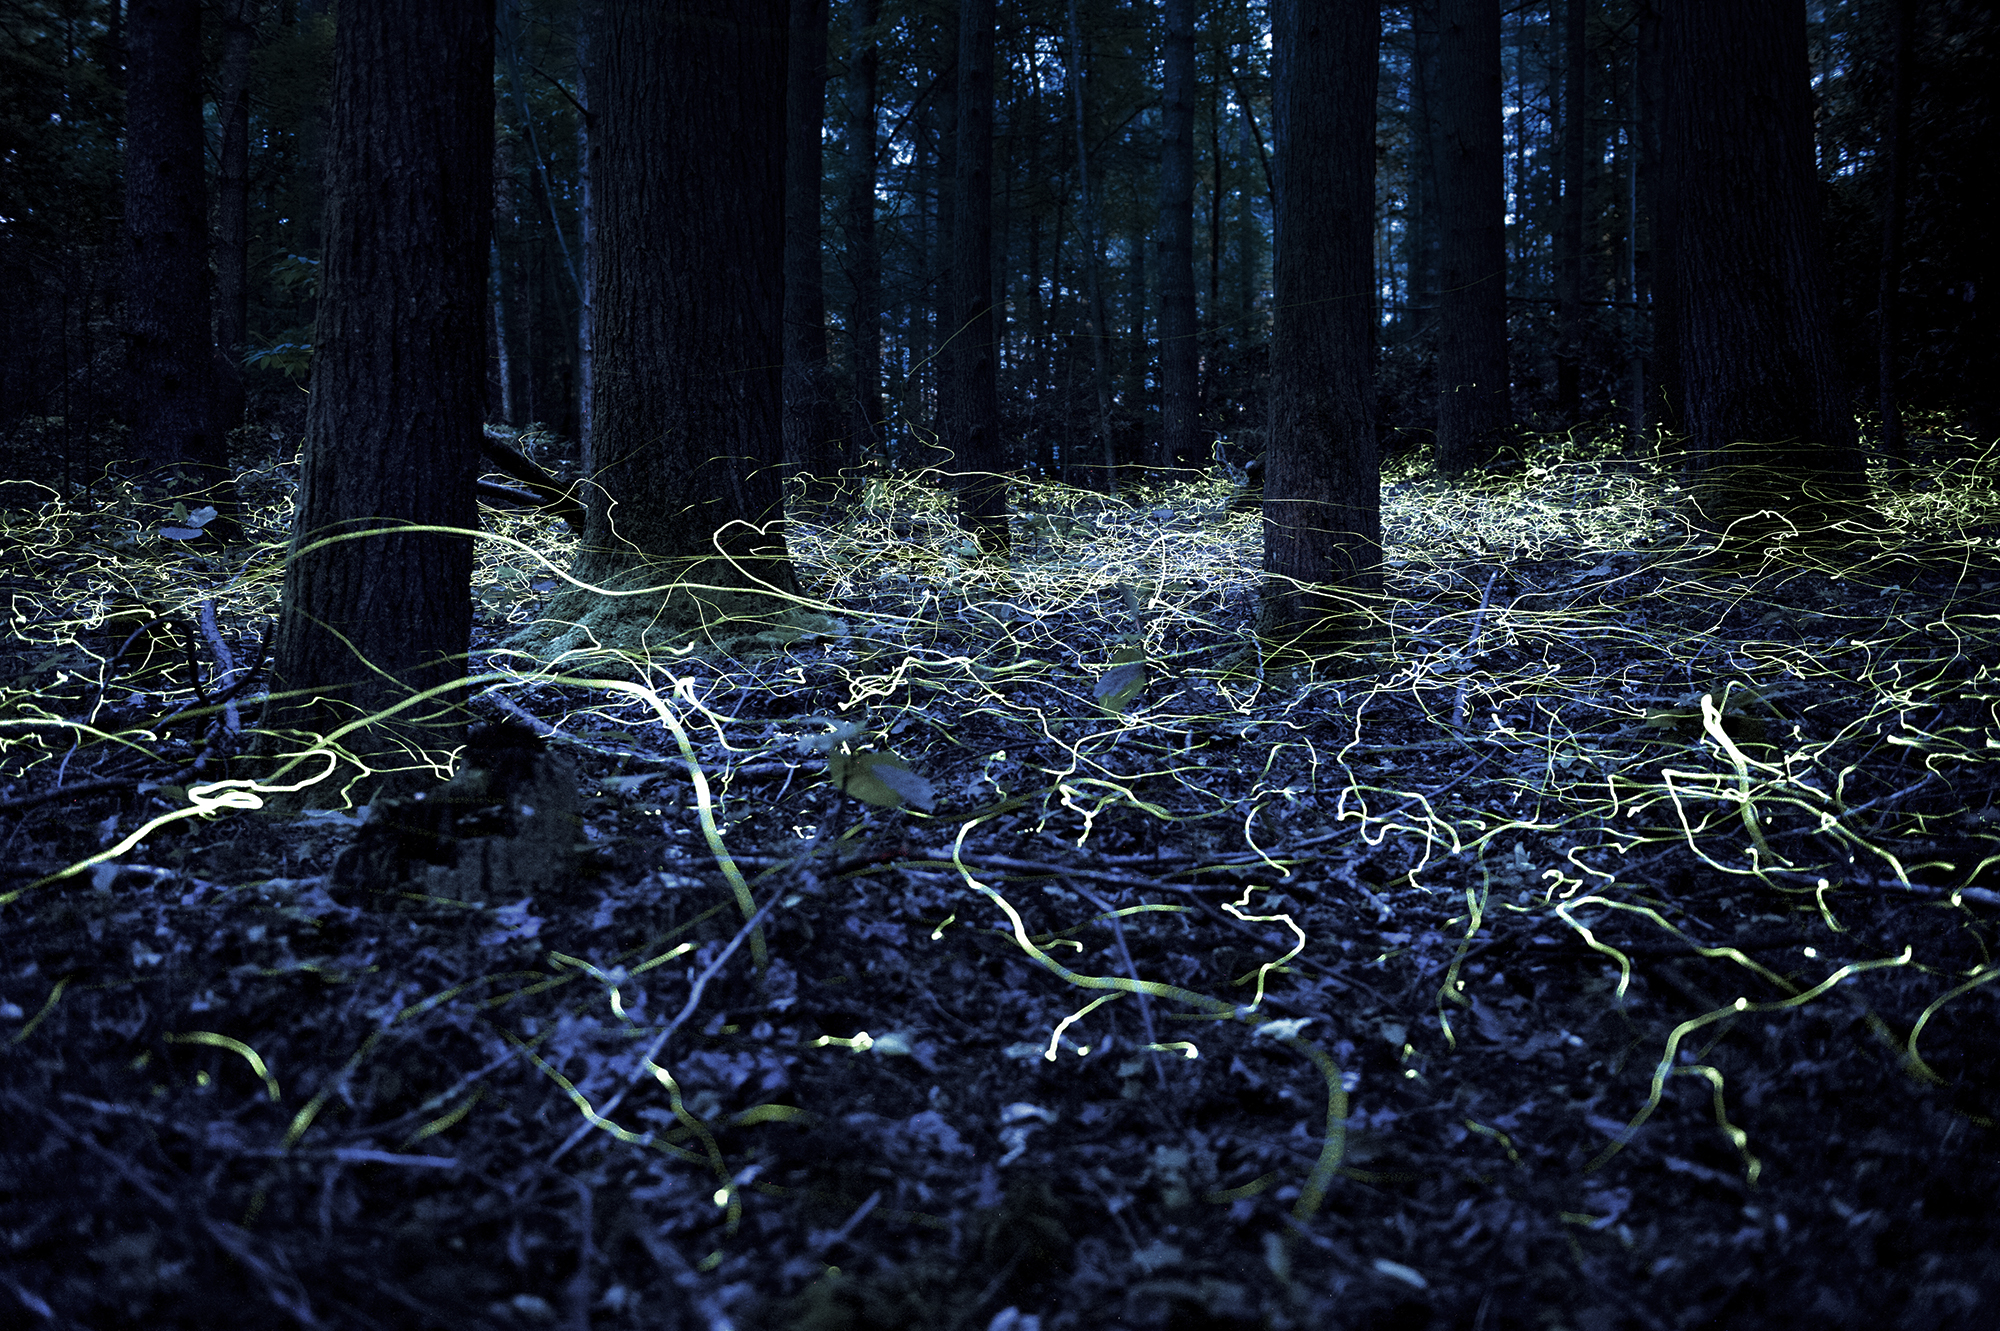 why do fireflies glow As fireflies are delighting children across the country with their nighttime displays, scientists are closing in on a better understanding of how the insects produce their enchanting glow.